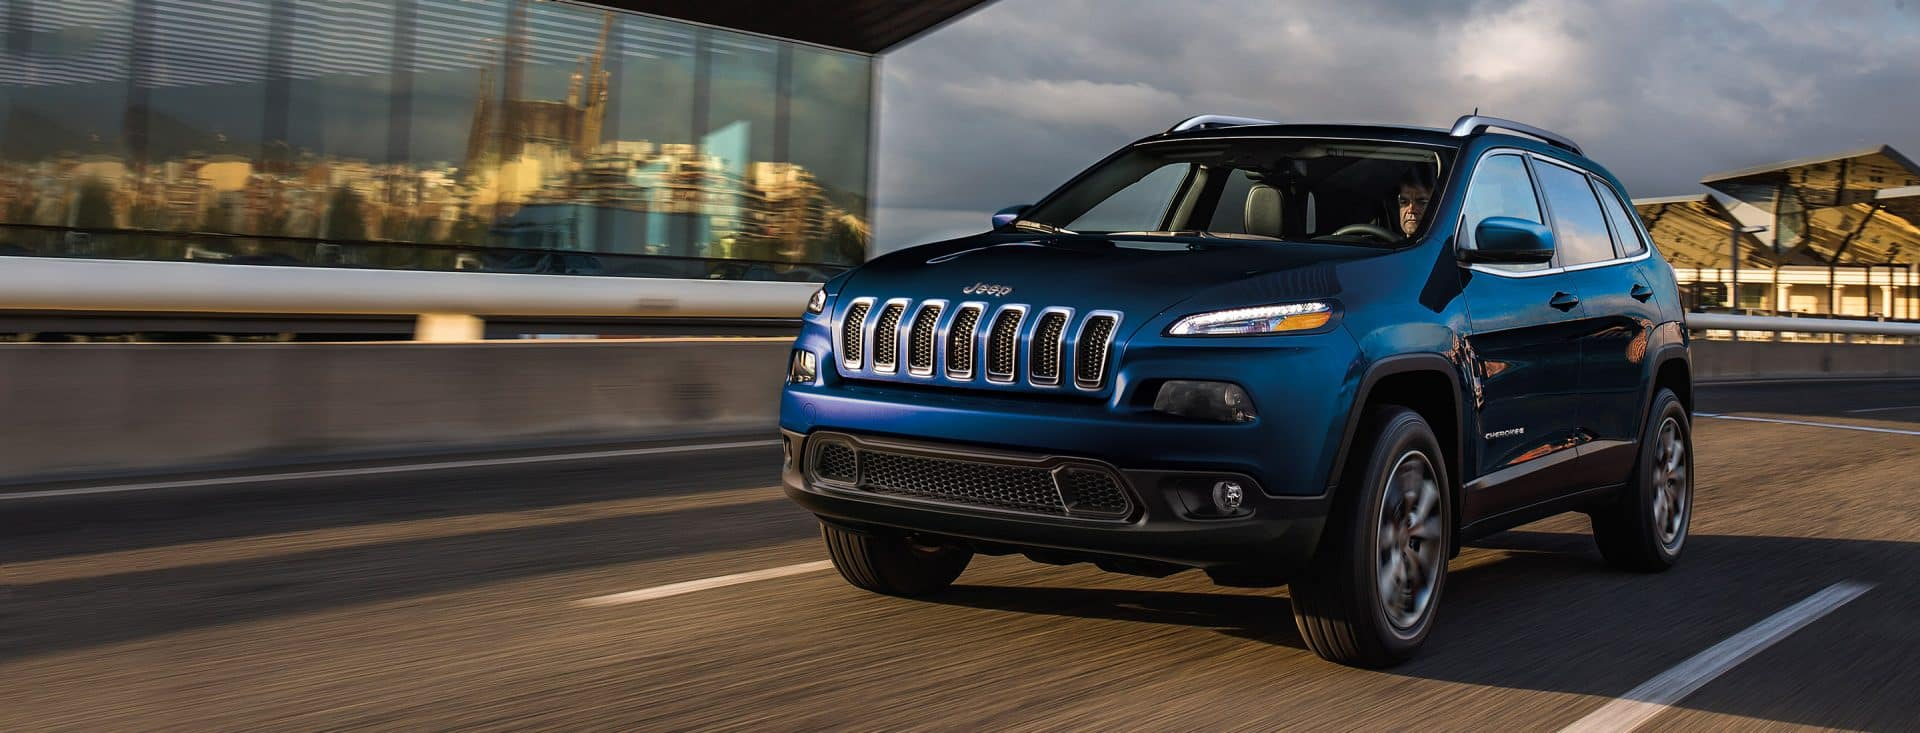 2018 Jeep Cherokee - Compact SUV Ready For Adventure